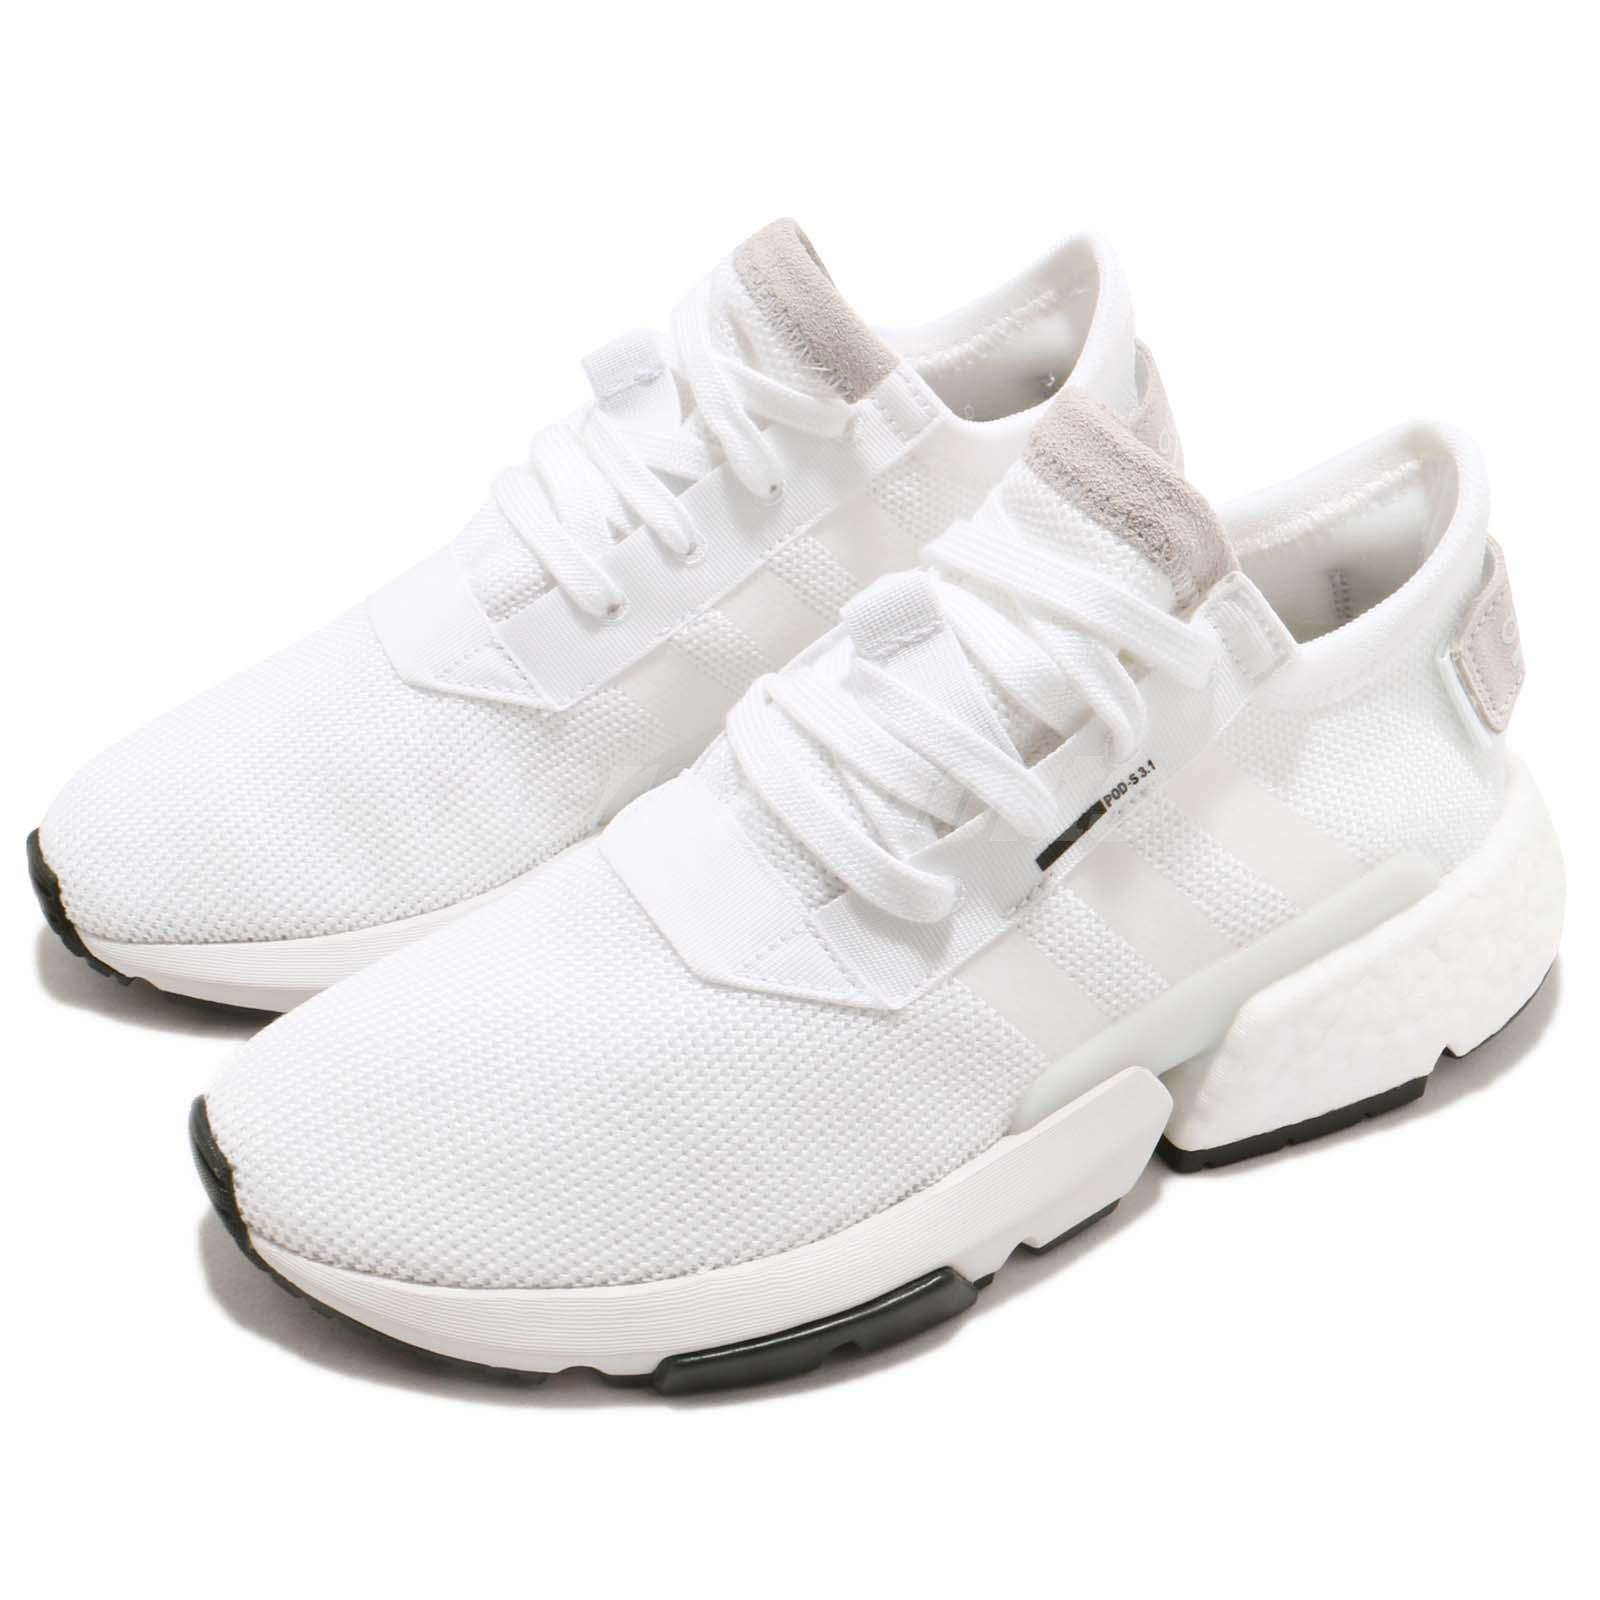 651313137 Details about adidas POD-S3.1 W Cloud White BOOST Womens Running Shoes  Sneakers B37459